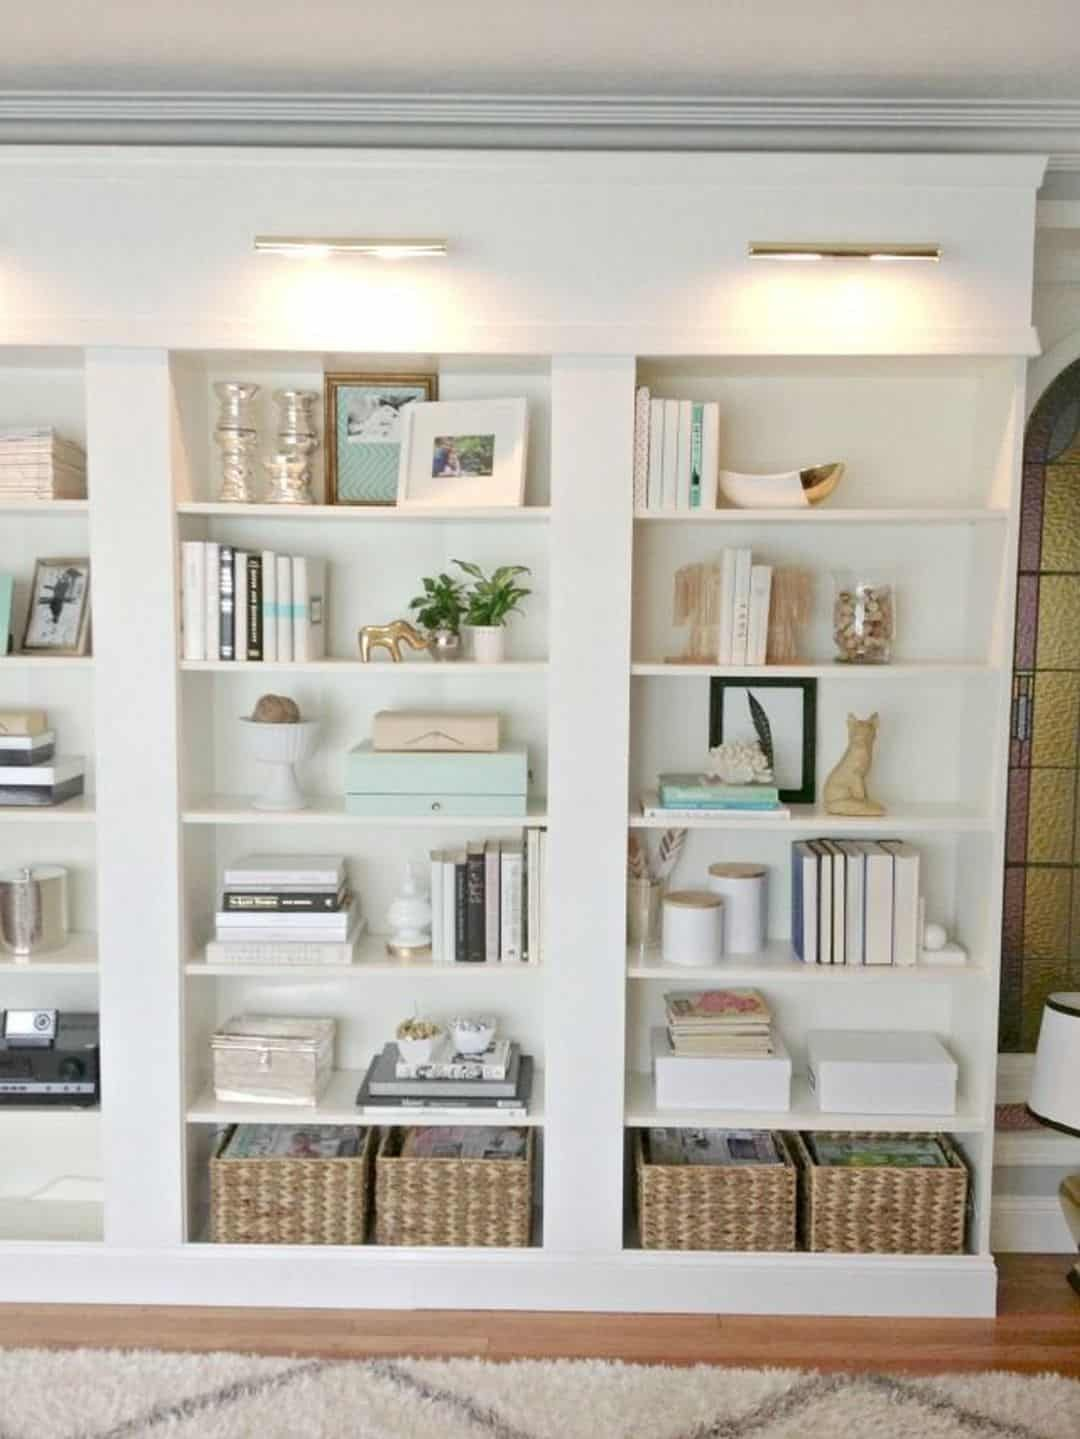 The Long Brick House A Retirement House With A Giant Bookshelf And Thick Brick Wall Bookshelves In Living Room Styling Bookshelves Bookcase Decor